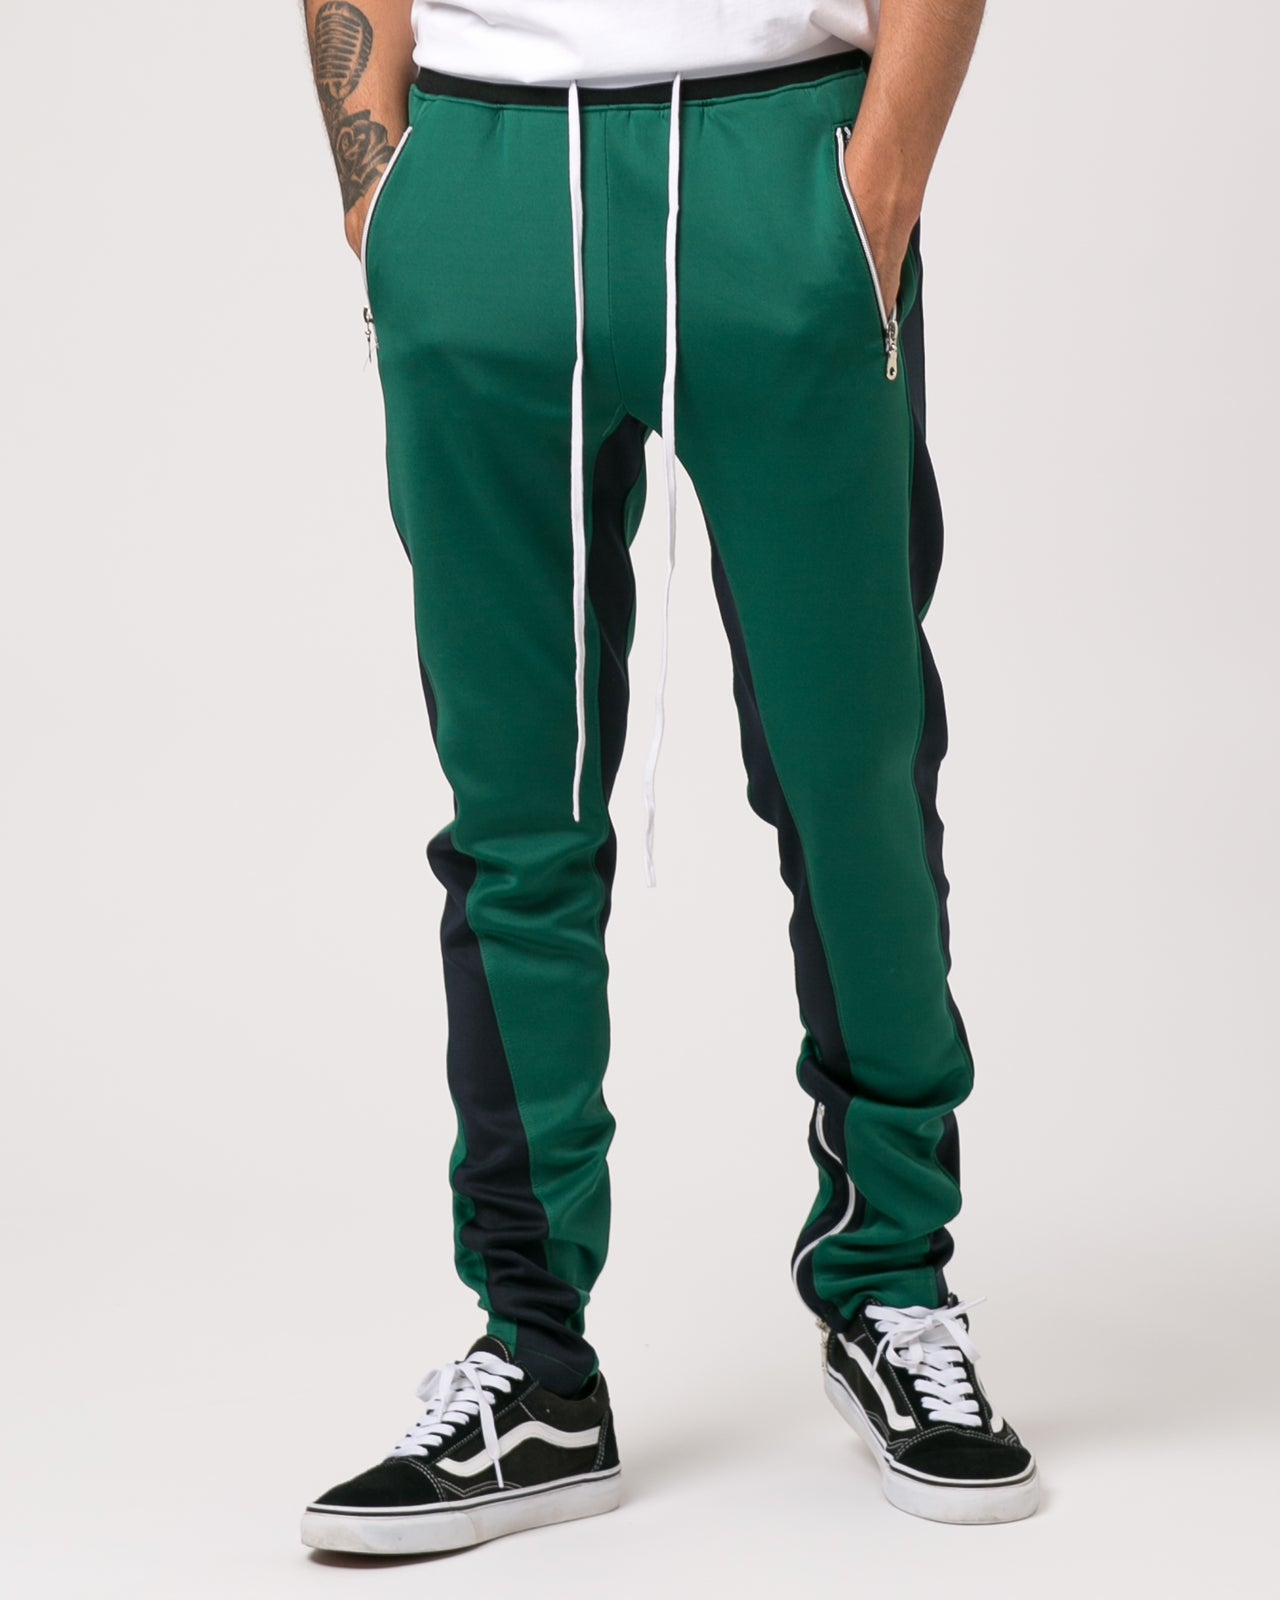 Track Pant - Color: Green/Navy | Green